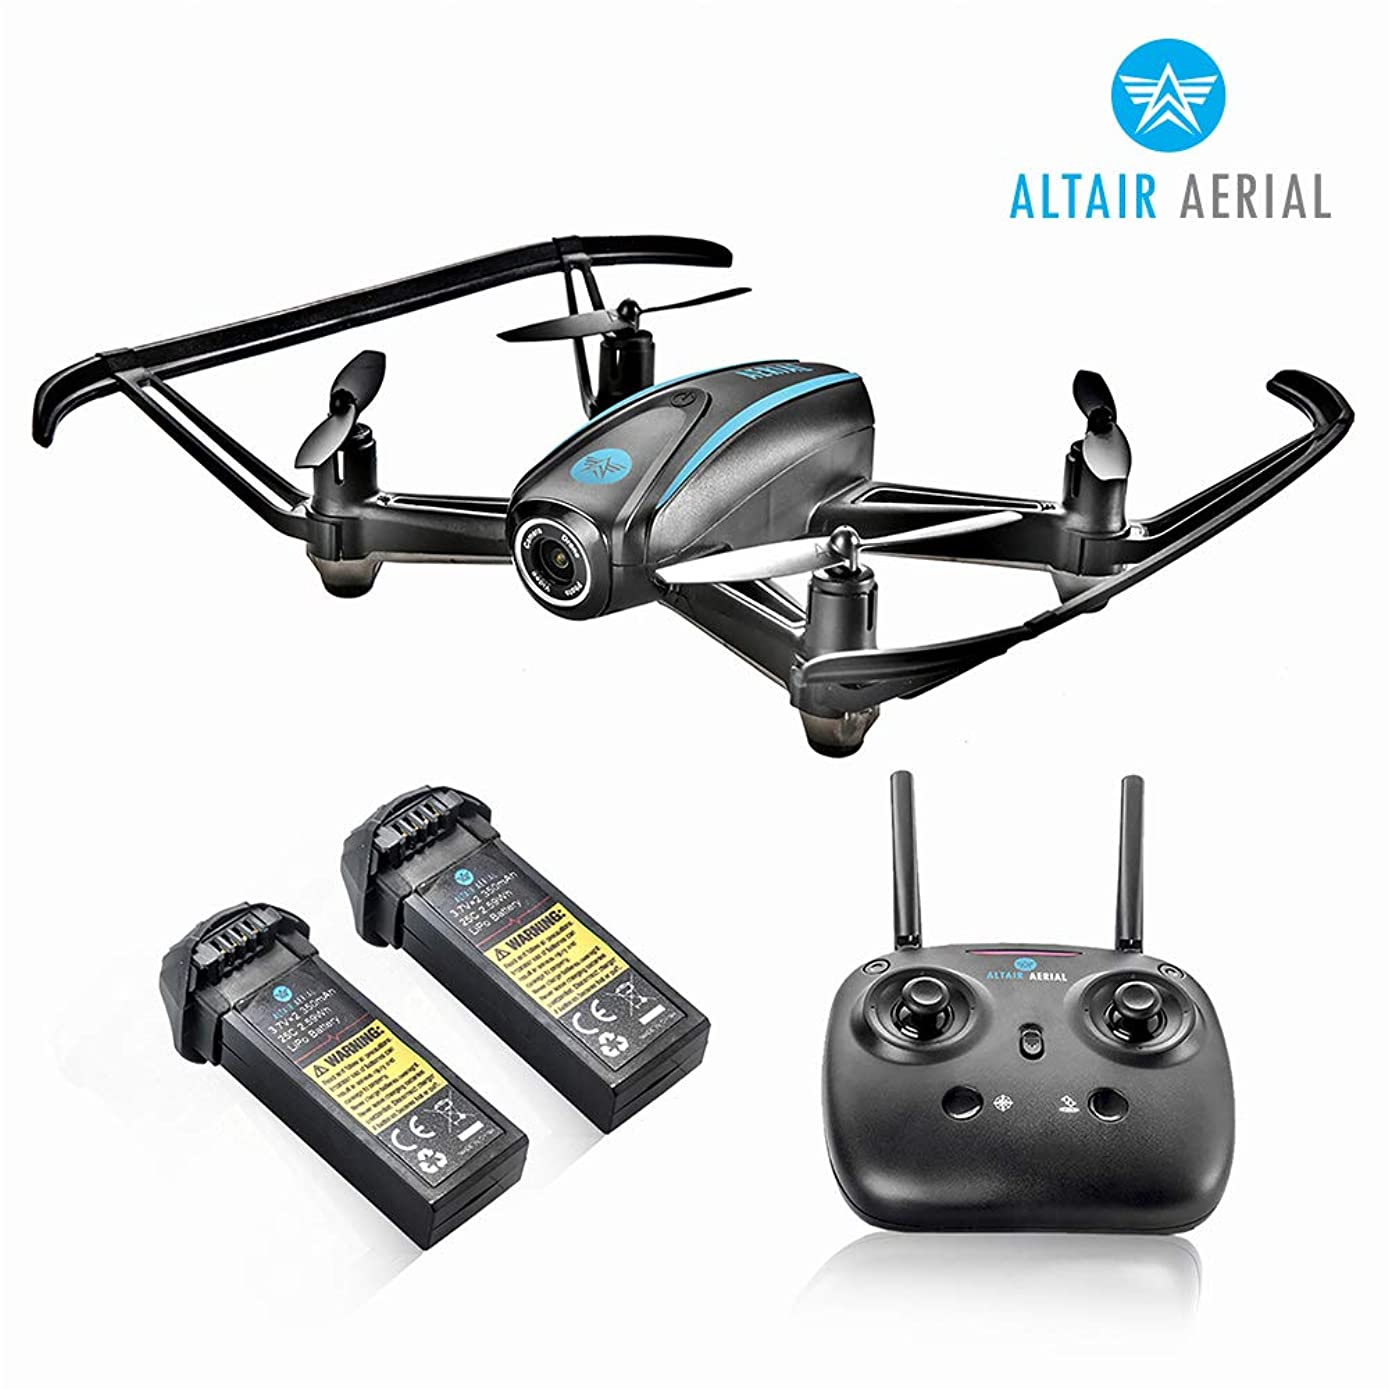 Altair #AA108 Camera Drone Great for Kids & Beginners, RC Quadcopter w/ 720p HD FPV Camera VR, Headless Mode, Altitude Hold, 3 Skill Modes, Easy Indoor Drone, 2 Batteries